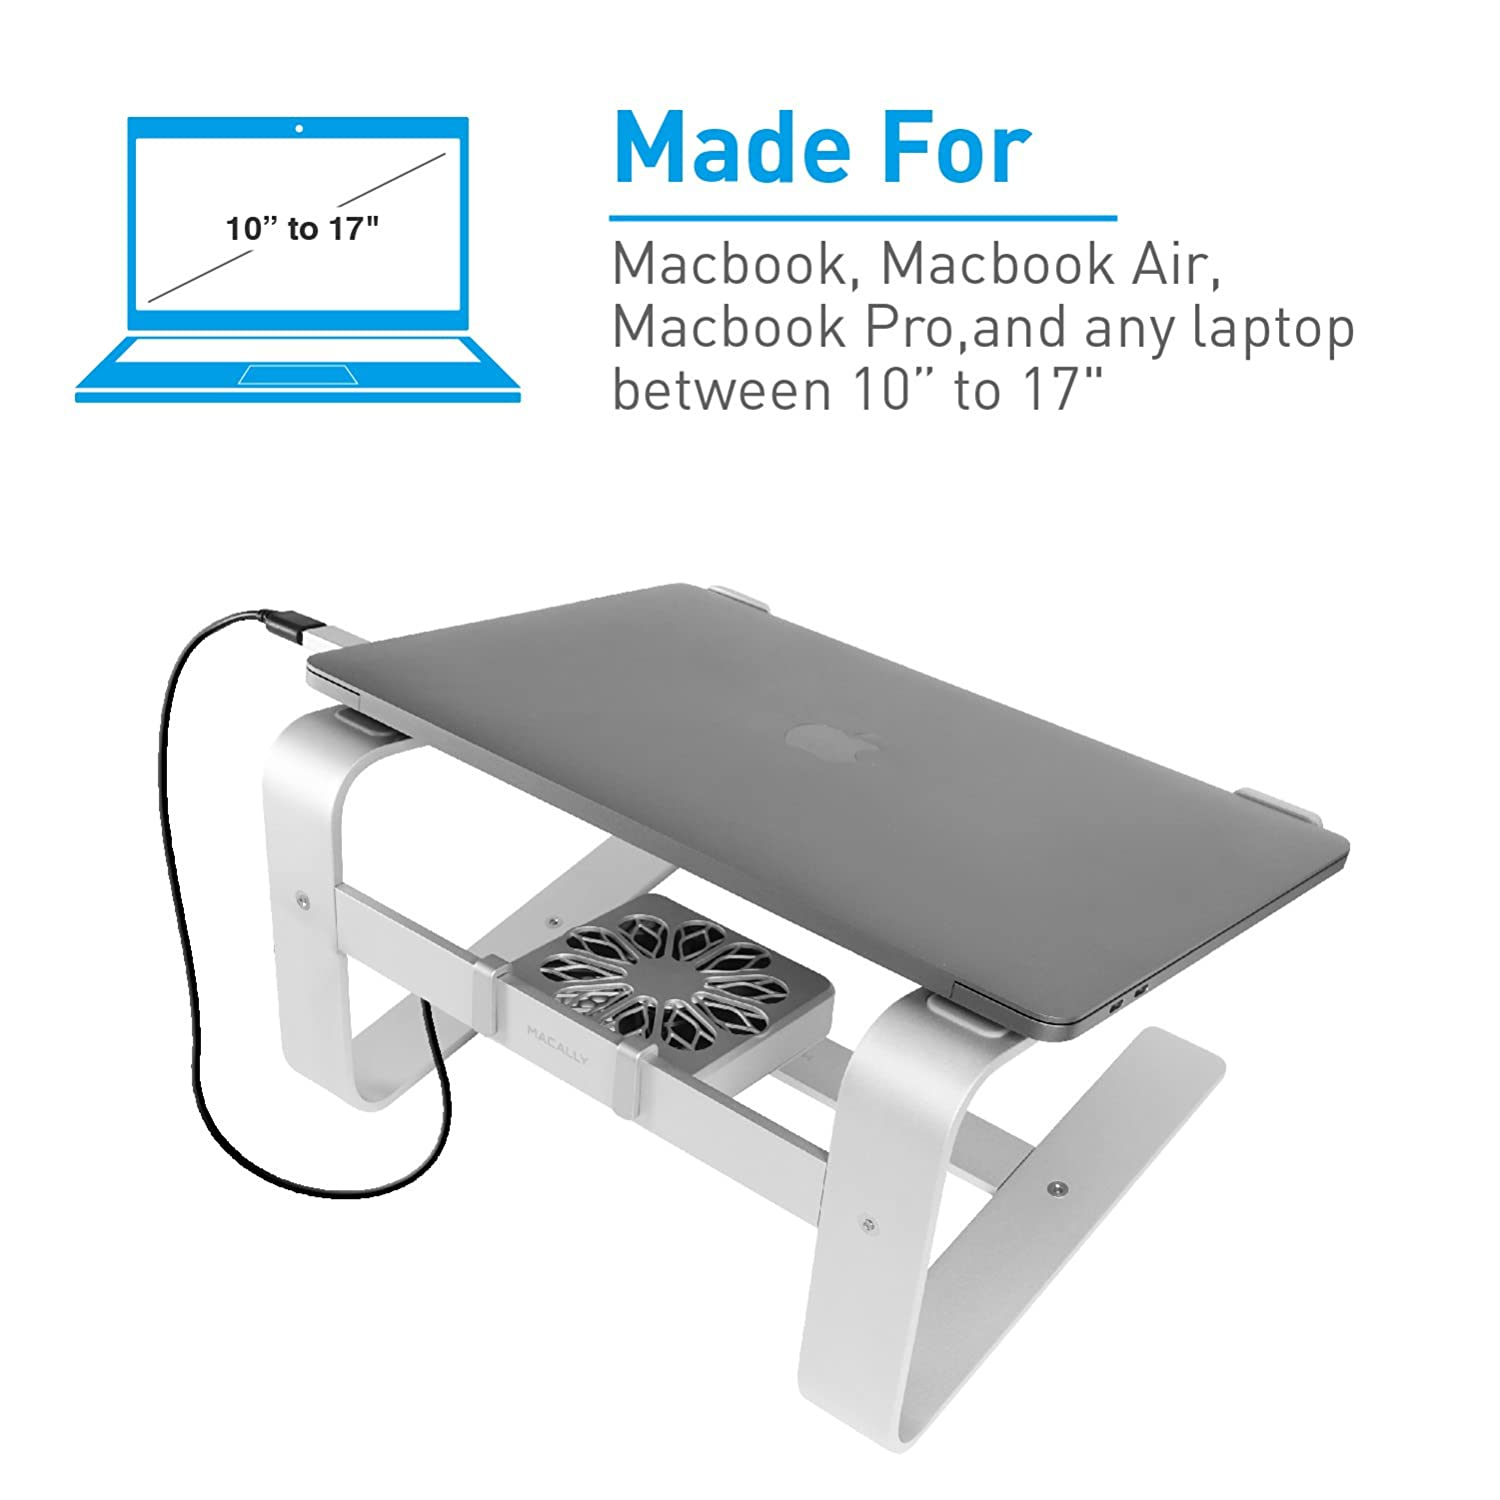 480ca53ca80d Macally Laptop Stand with Cooling Fan for Desk | Sturdy Aluminum Frame with  Apple Finish | Quiet Cooler Fan | Fits All Notebooks from 10